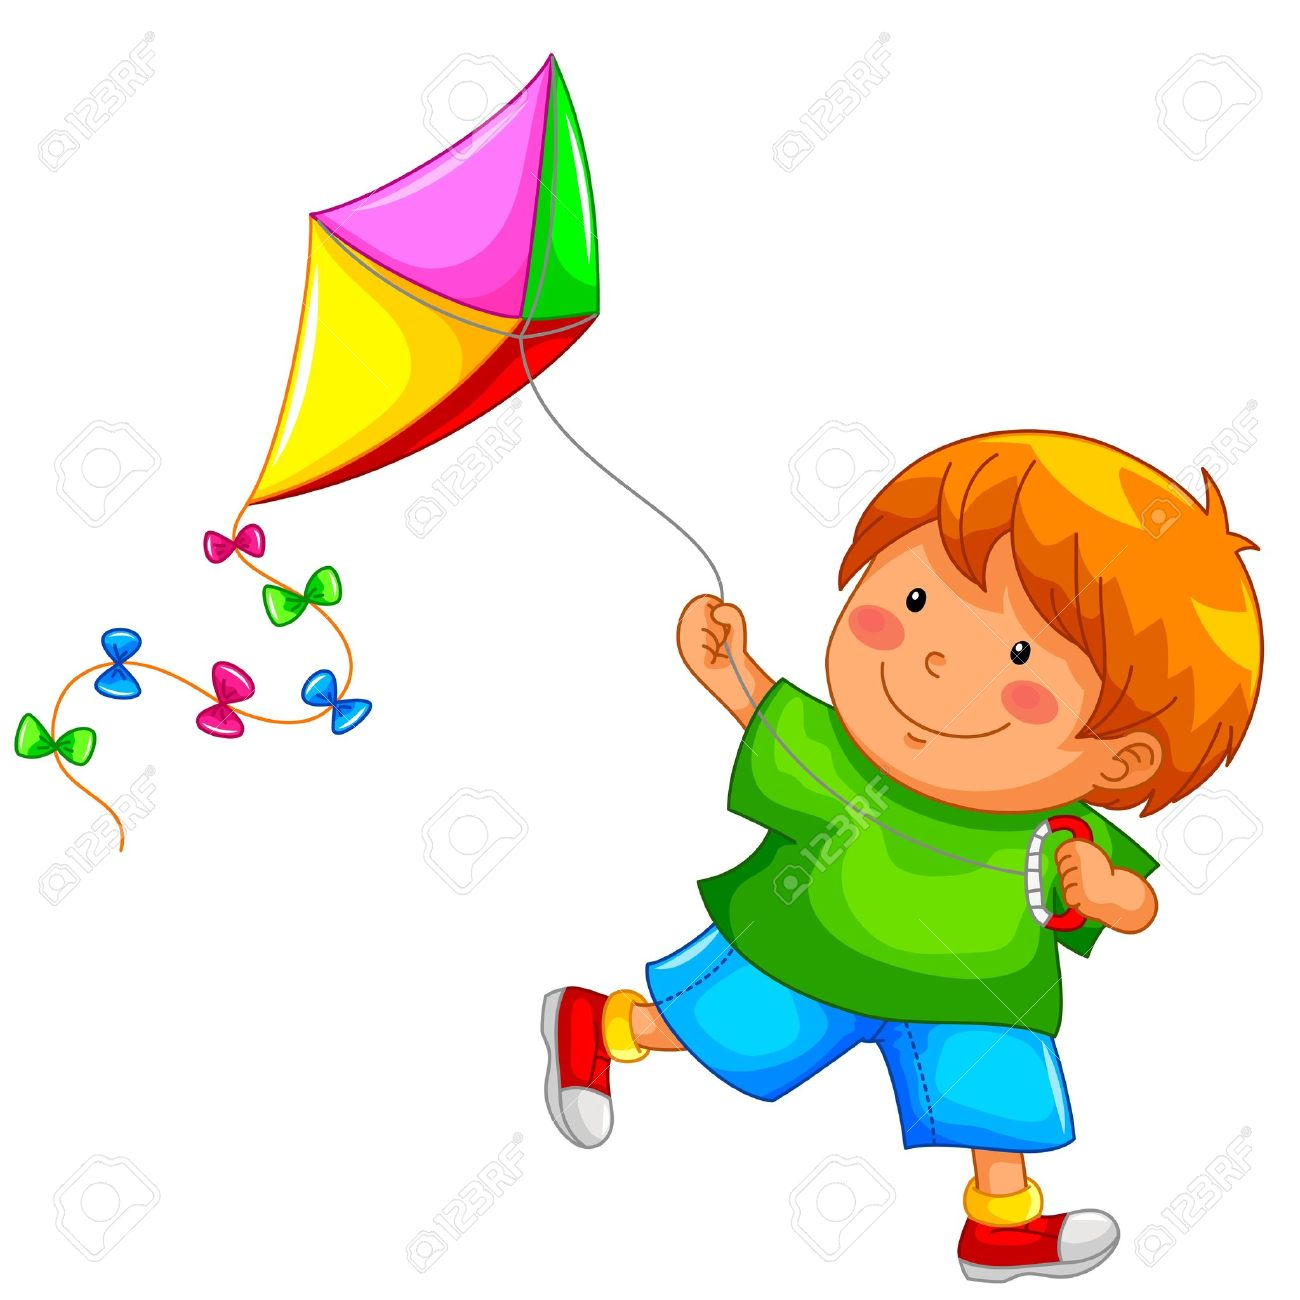 Boy flying kite clipart.